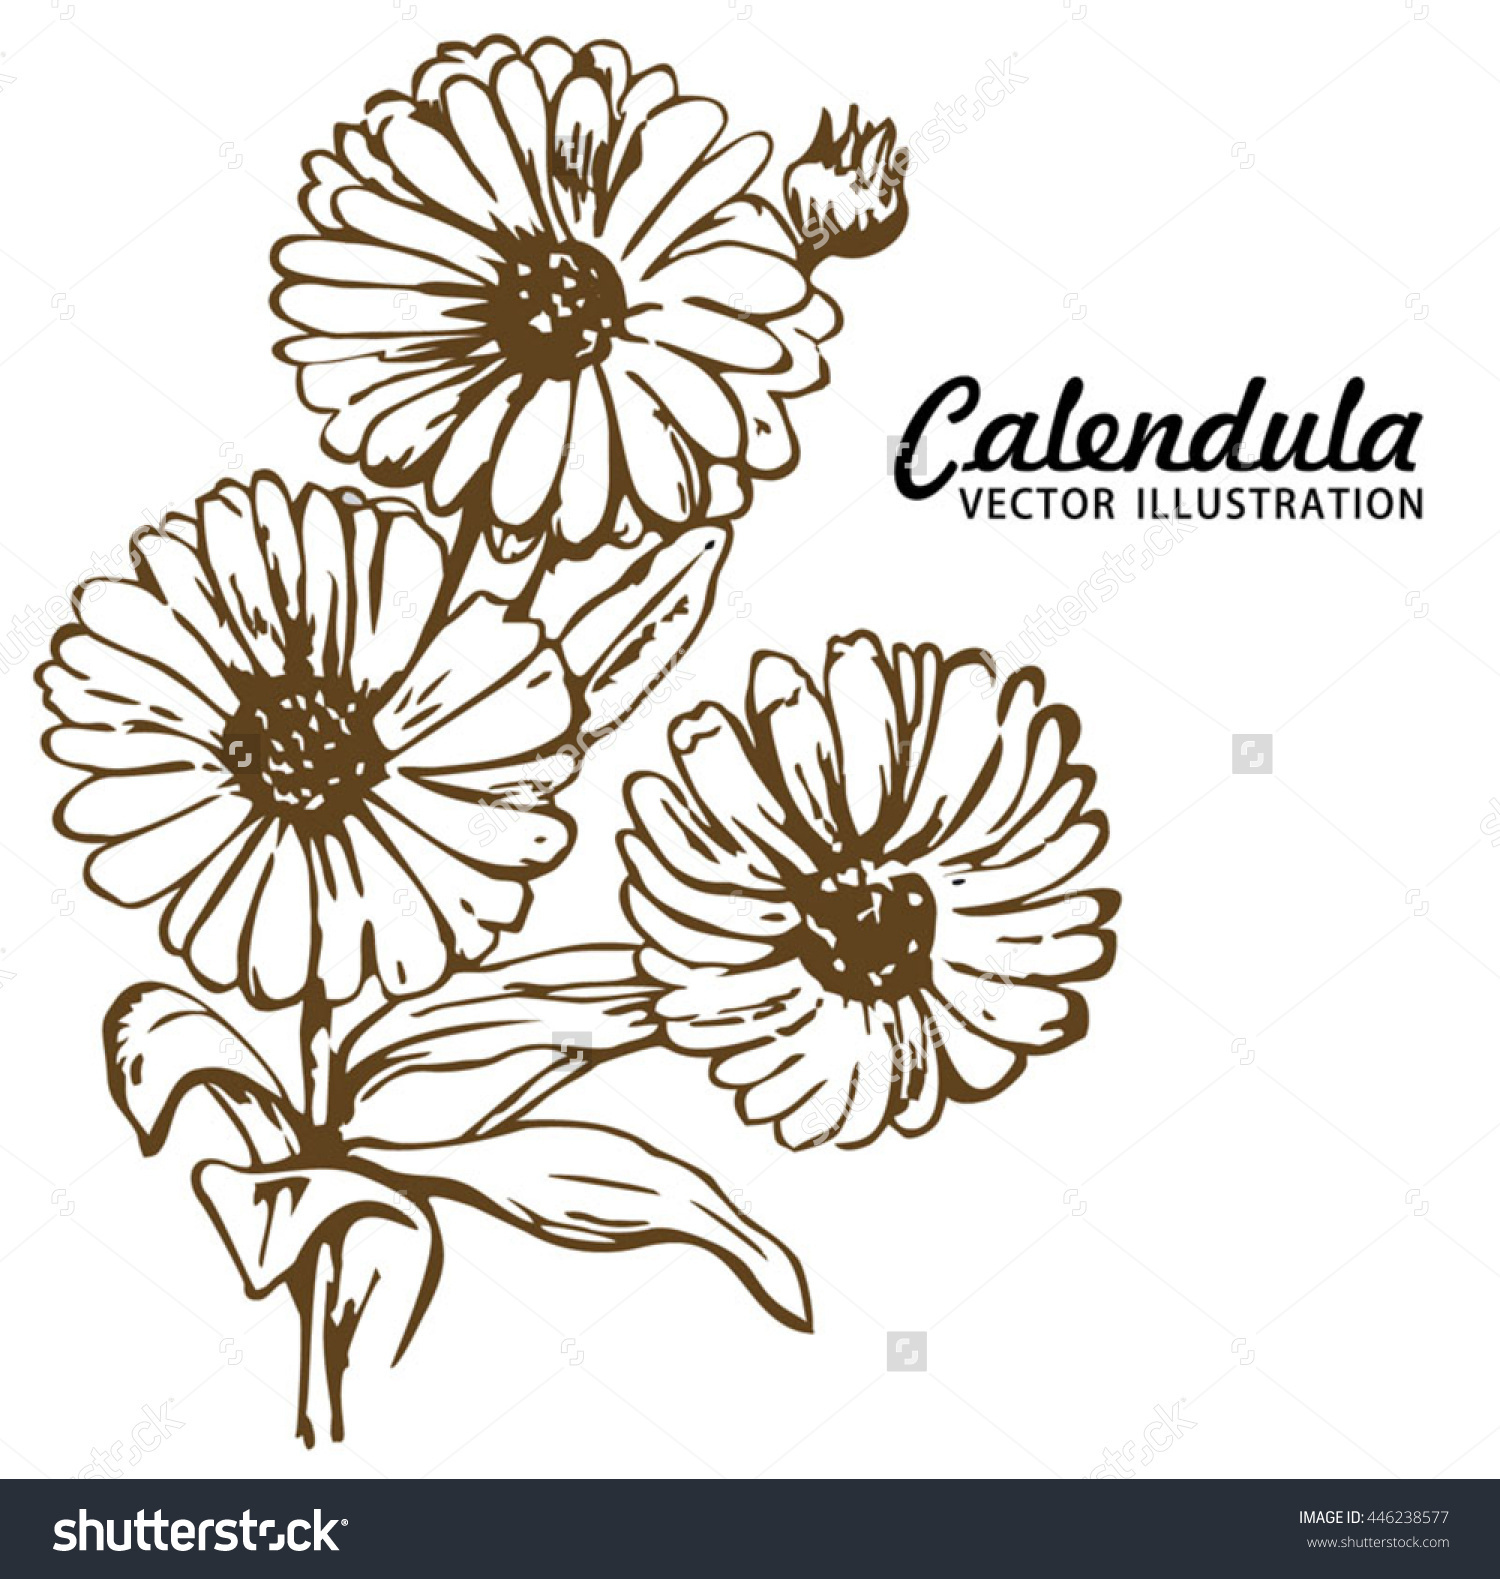 Vector Hand Drawn Calendula Plant Illustration Stock Vector.